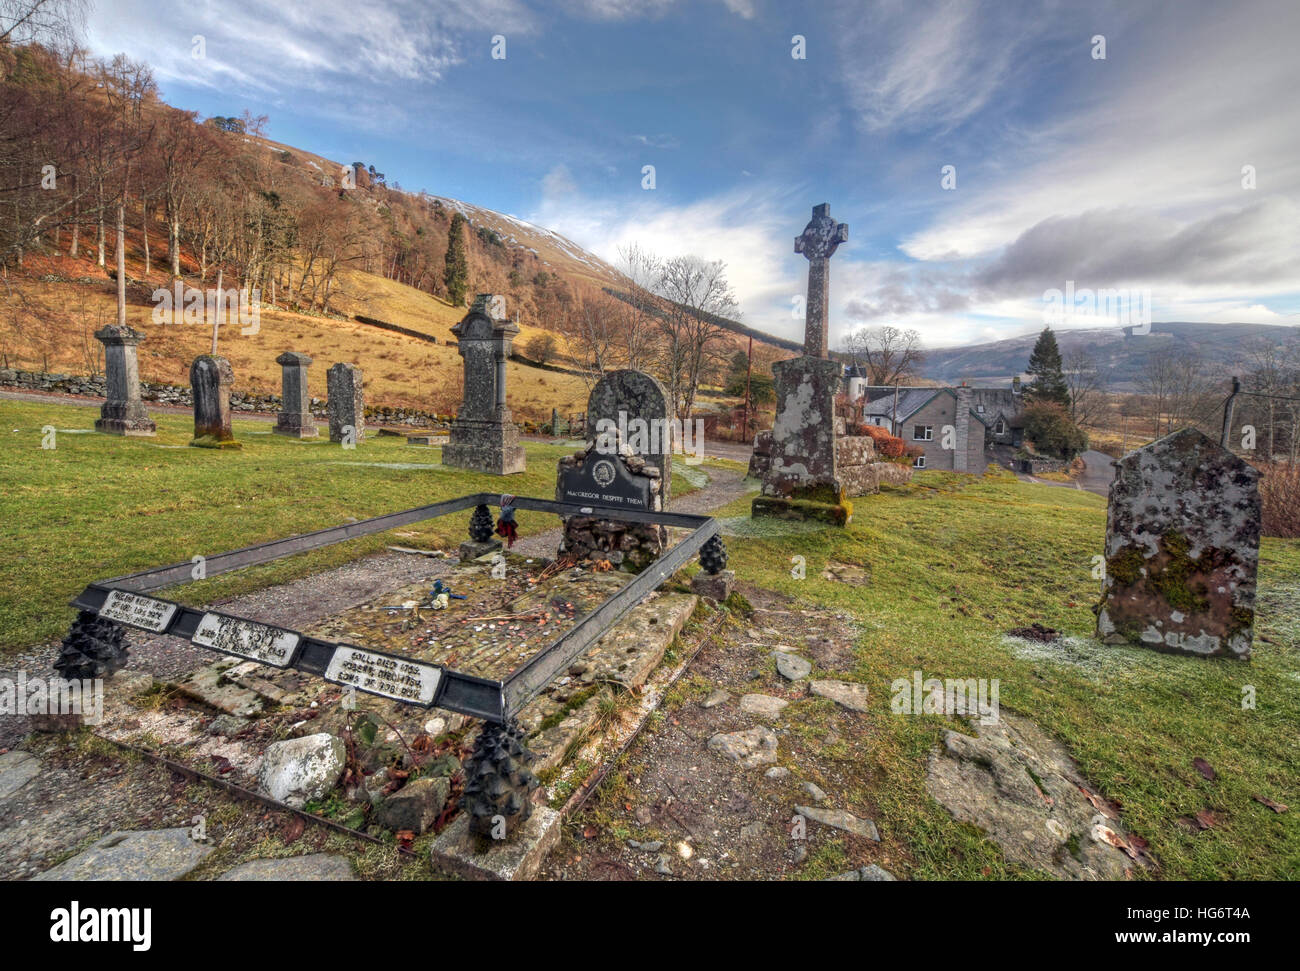 Inverlochlarig Beg,Balquhidder,Sterling,Scotland,UK,Inverlochlarig,Beg,Robert,Rob,Roy,RobRoy,MacGregor,Raibeart,Ruadh,MacGriogair,countryside,rural,grave,burial,place,burial place,Scotlands History,Scotlands History,GoTonySmith,@HotpixUK,Tony,Smith,UK,GB,Great,Britain,United,Kingdom,Scotish,Scottish,Scotch,British,Scotland,Alba,problem,with,problem with,issue with,tourist,tour,travel,visit,famous,hero,martyr,tourism,beautiful,SNP,Scottish National Party,independance,independent,independence,wild,culture,Scots,Scots Culture,Scottish Culture,Historic,history,Historic Scotland,stone,stones,bones,Balquidder,film,Scottish,SNP,independance party,independence,indyref,referendum,2nd,second,Buy Pictures of,Buy Images Of,Images of,Stock Images,Tony Smith,United Kingdom,Great Britain,British Isles,Scottish Nationalism